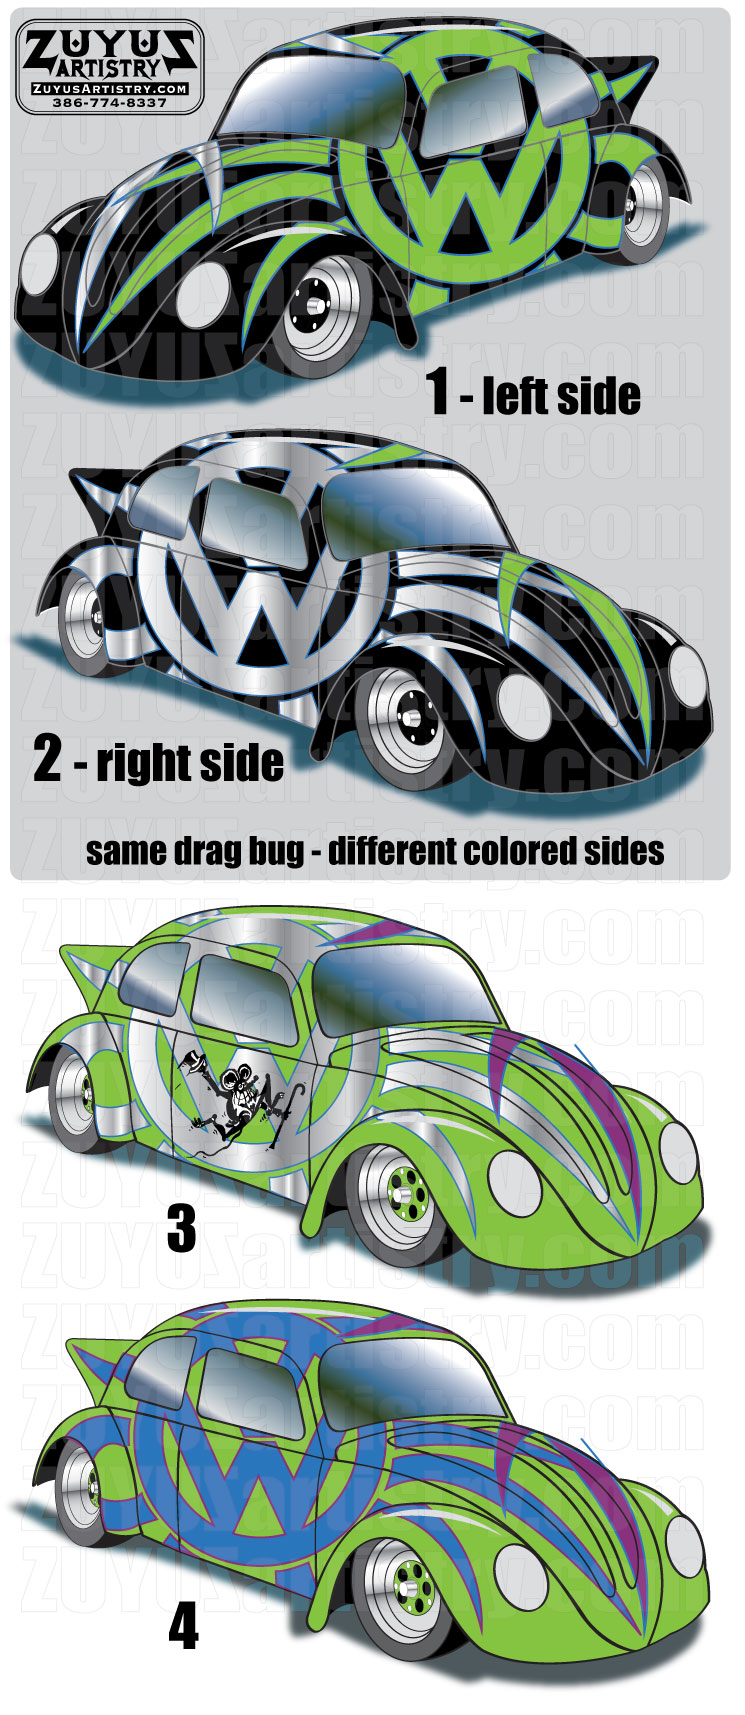 Vw bug drag car rendering on vw beetle logo